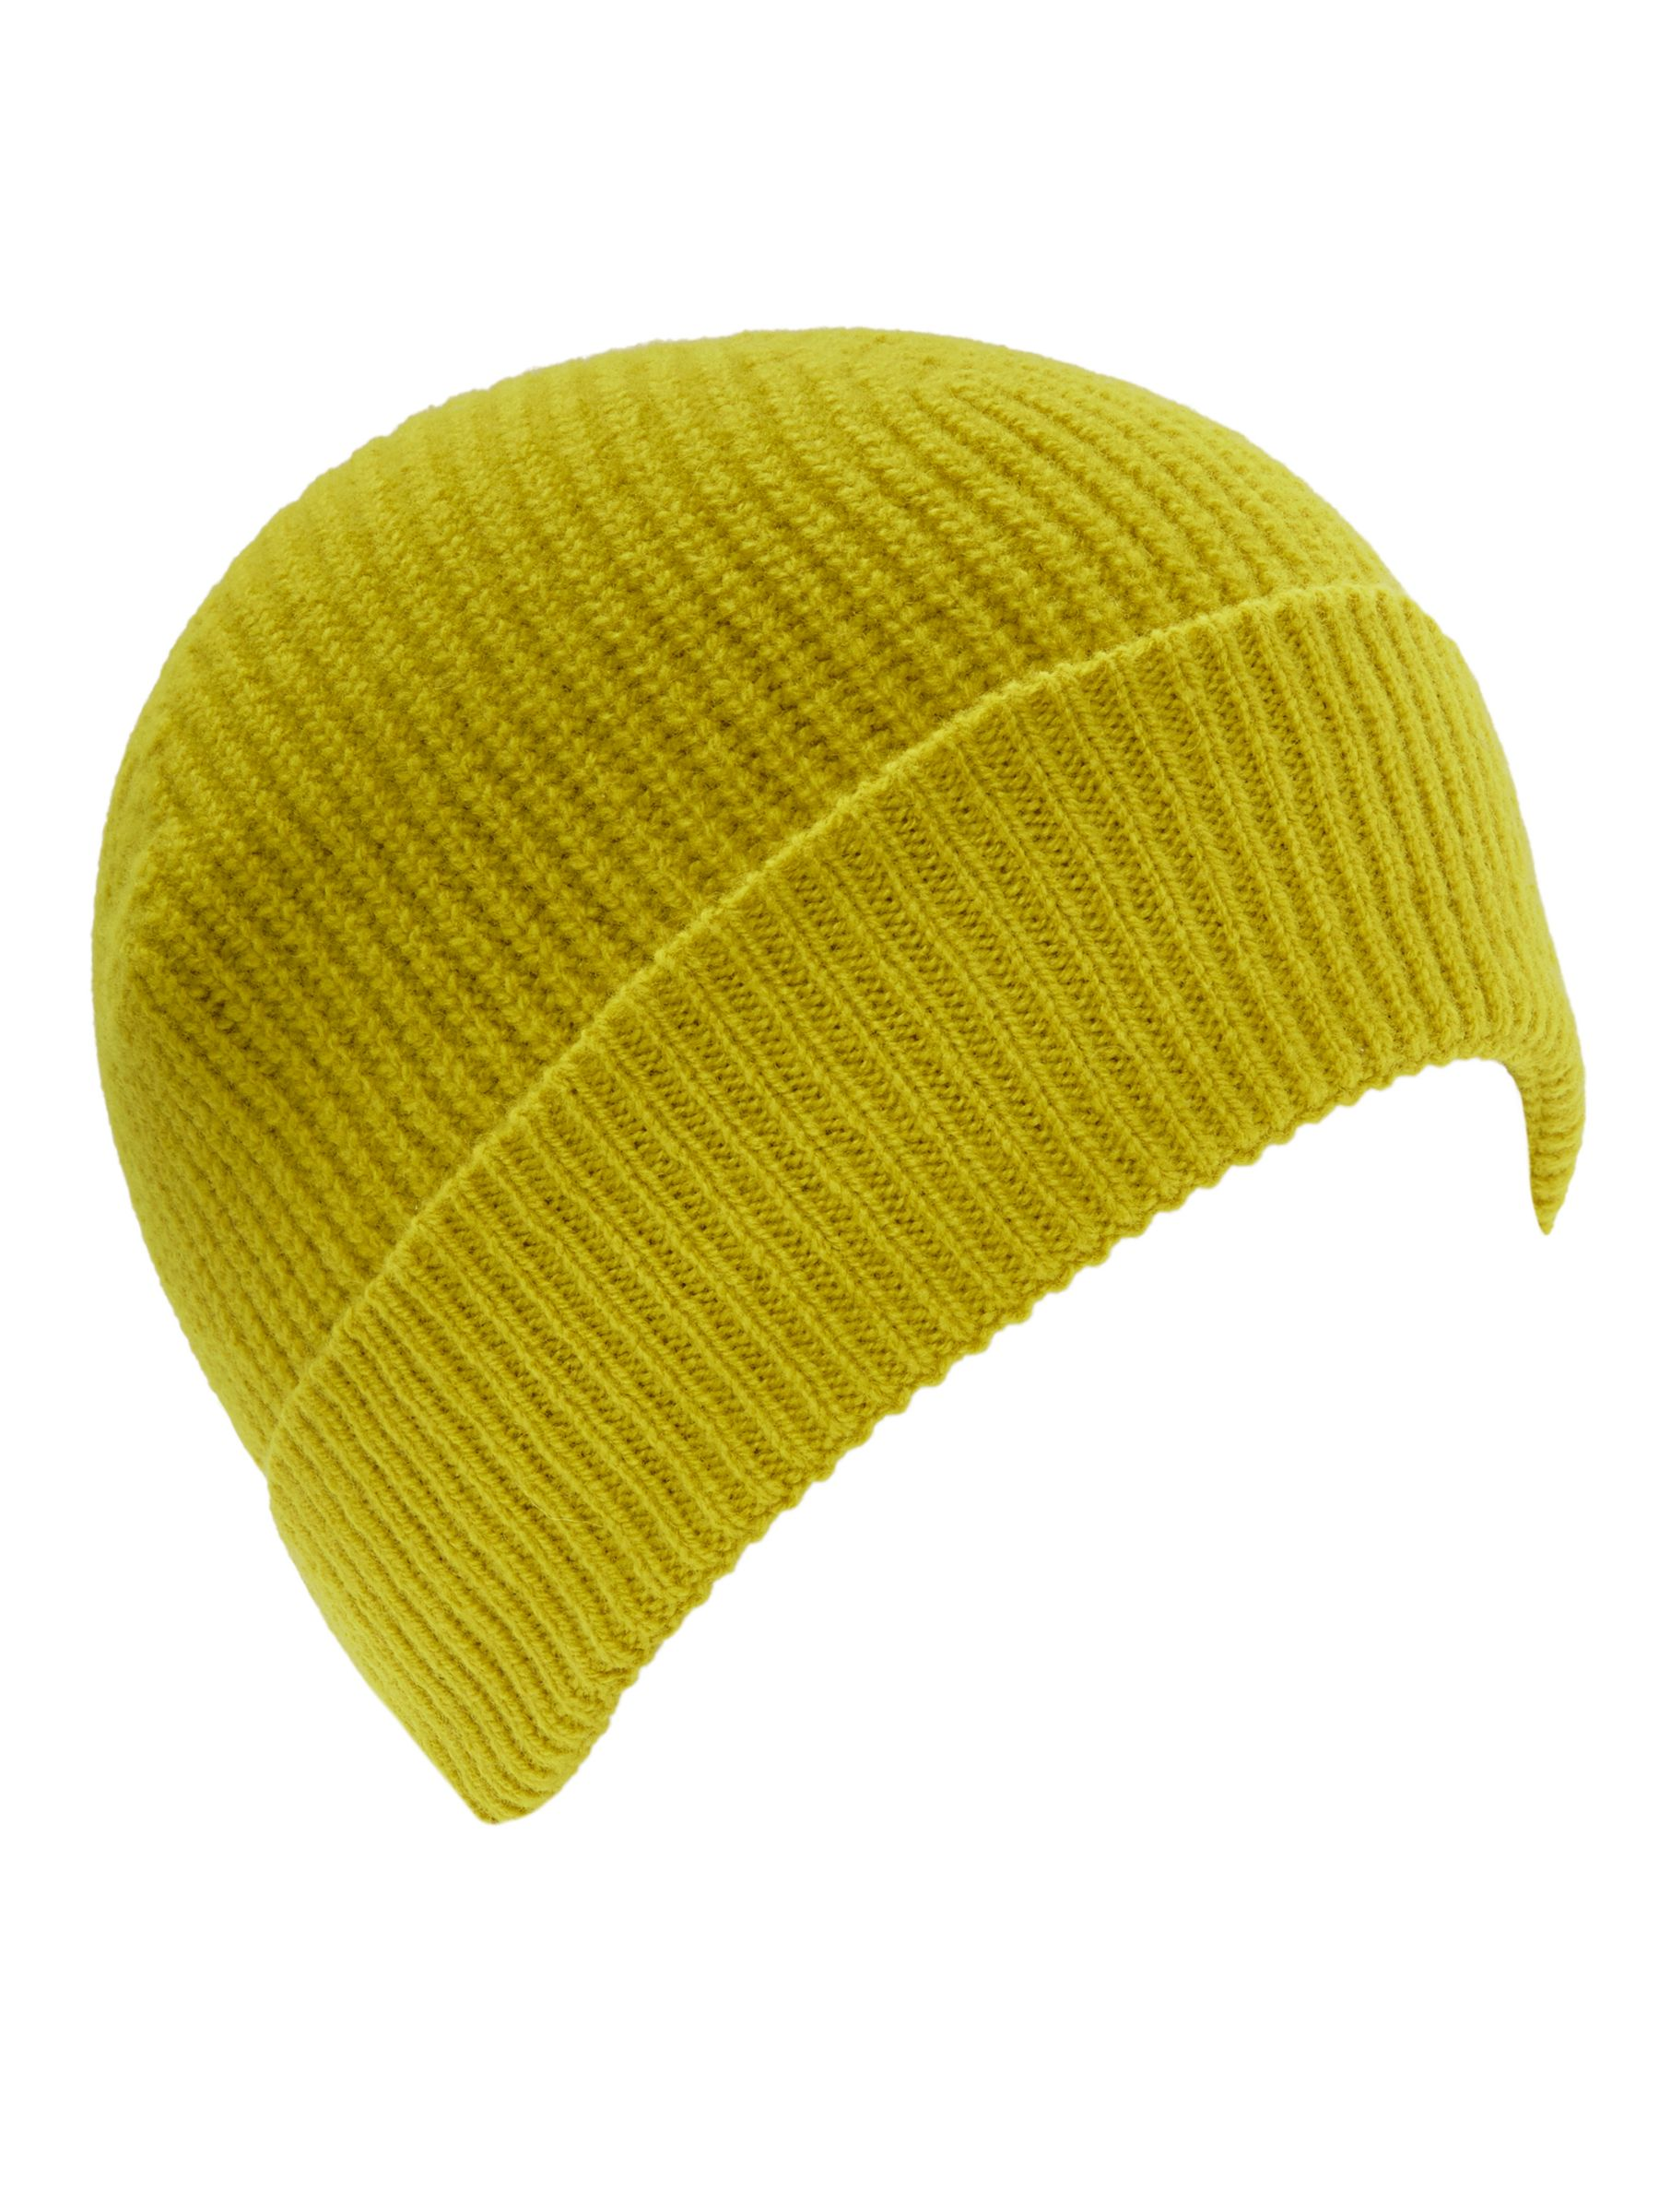 05d4eaaa Gloverall for John Lewis & Partners Beanie Hat, One Size, Yellow